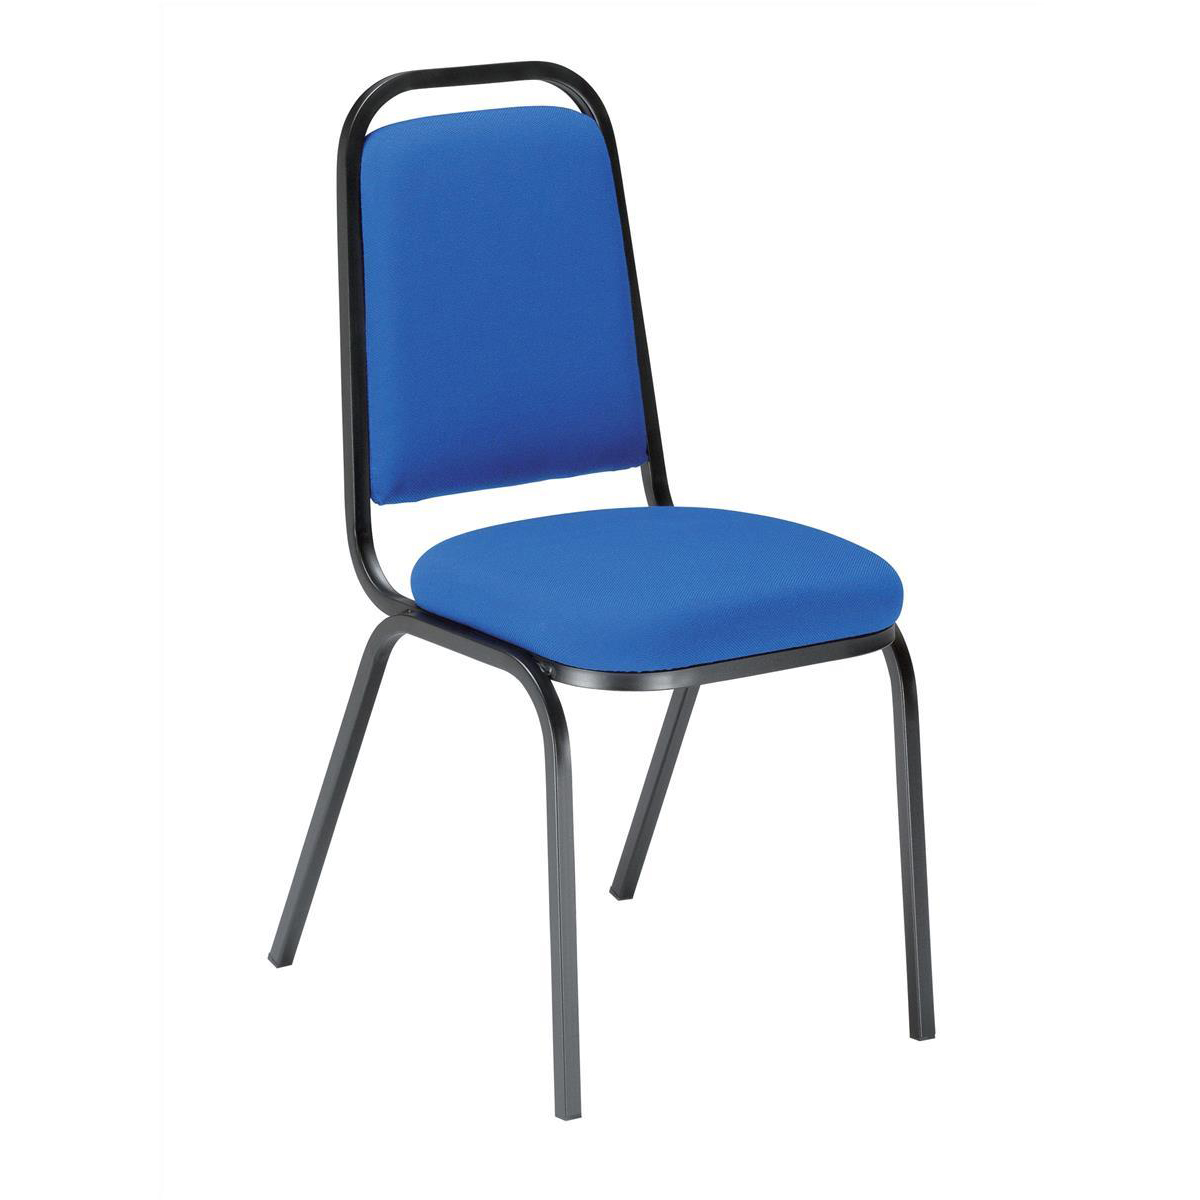 Trexus Banquet Chair Blue/Black Frame 390x355x485mm Ref 56801